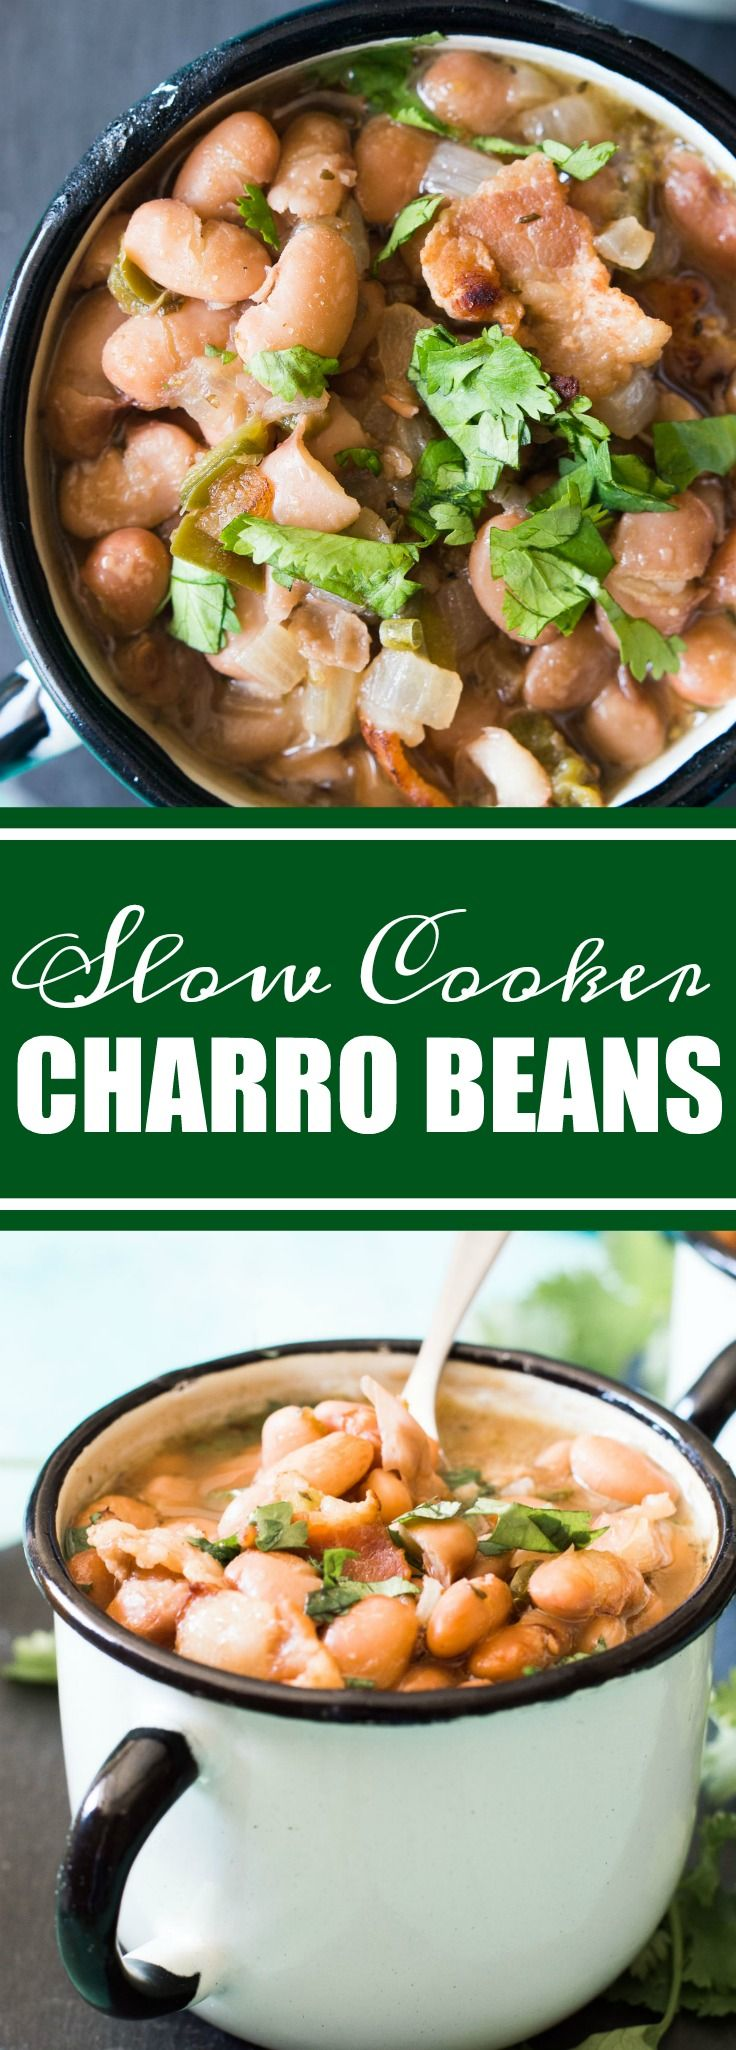 Charro beans.  Or Cowboy beans.  A classic Tex Mex side dish.  This dish is even easier to make than you may think.  No need to soak the beans ahead of time, because honestly, who plans that far in advance.  And this dish can be made in the slow cooker, making it an easy set it and forget it type recipe.